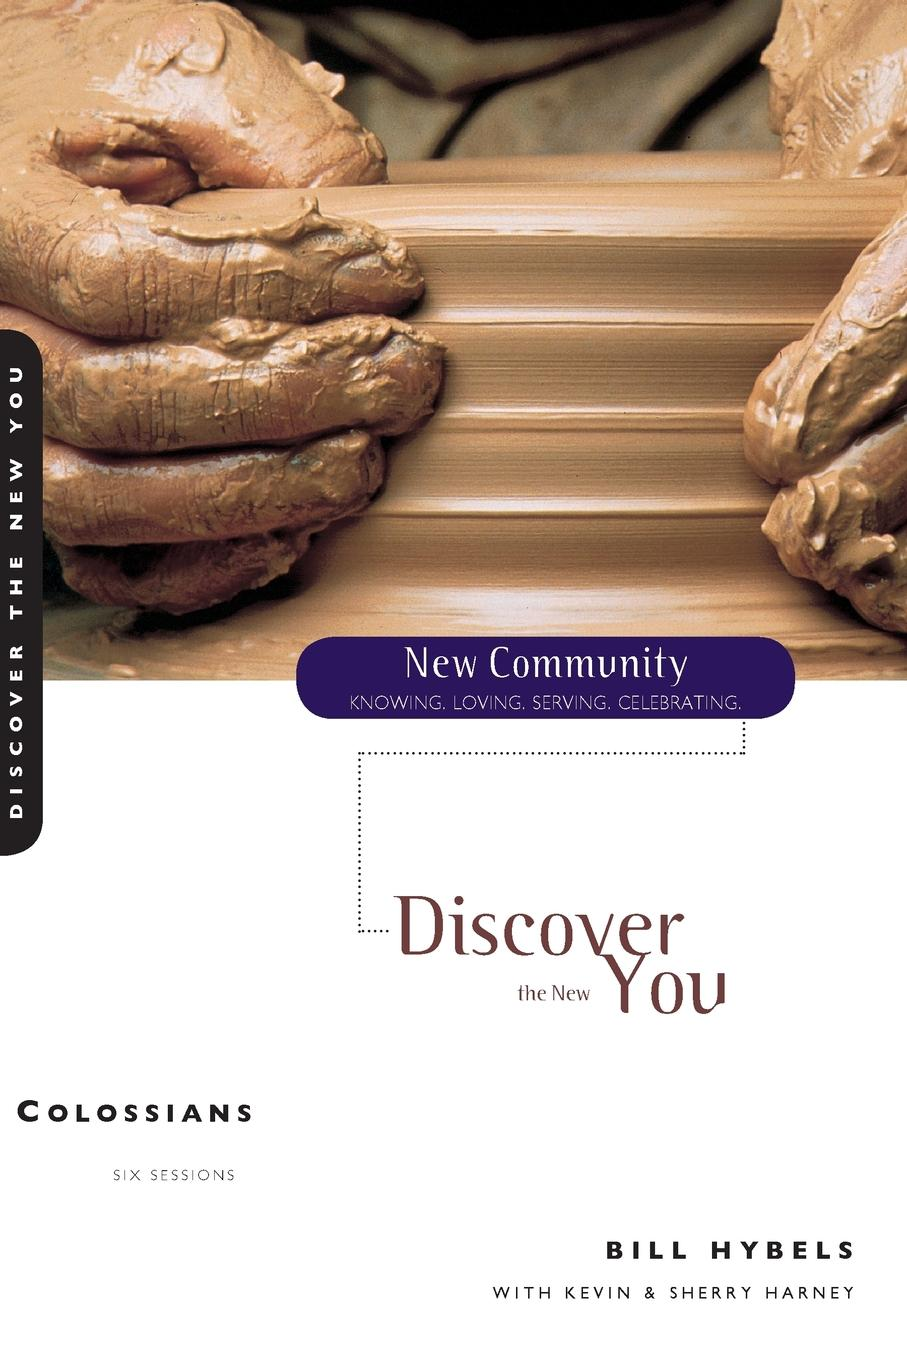 Bill Hybels Colossians. Discover the New You bill hybels sermon on the mount 1 connect with god